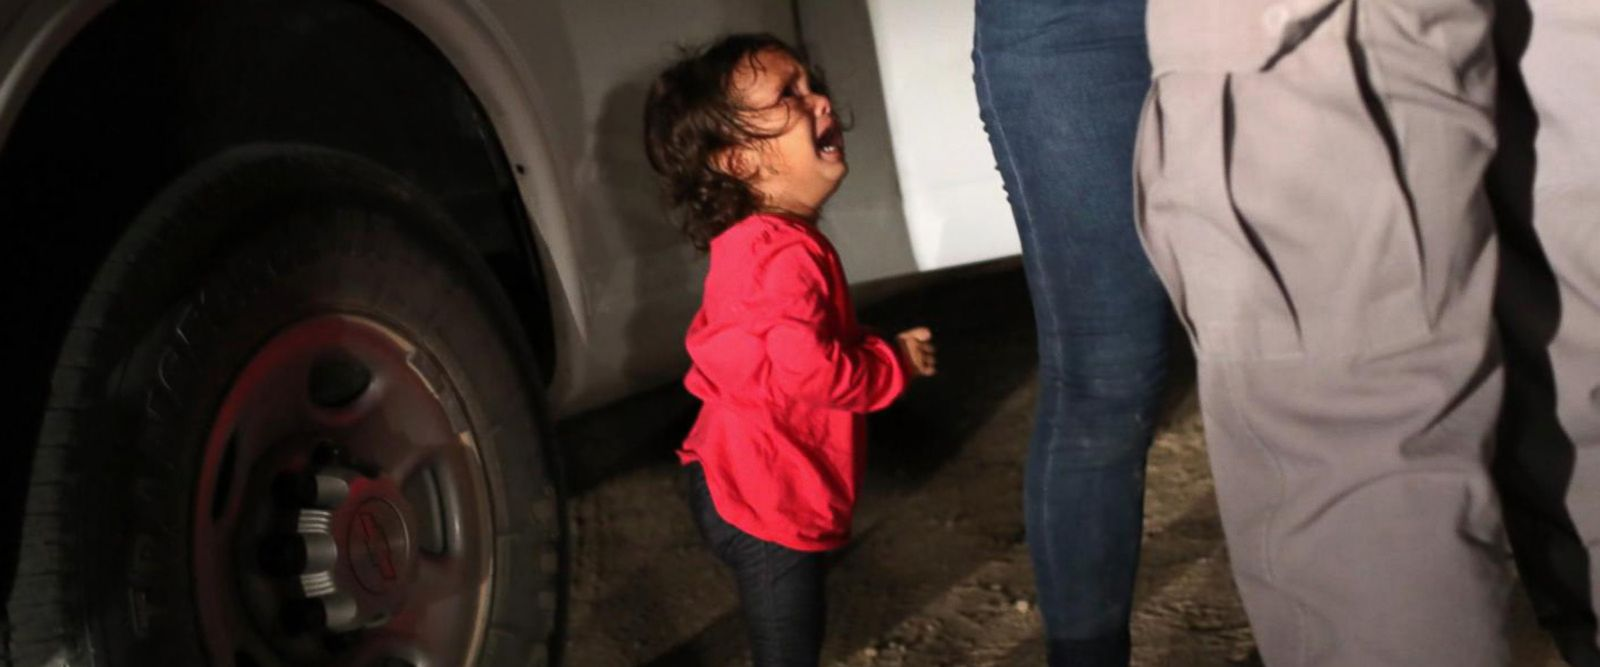 VIDEO: What we know about immigrant children being separated from their parents